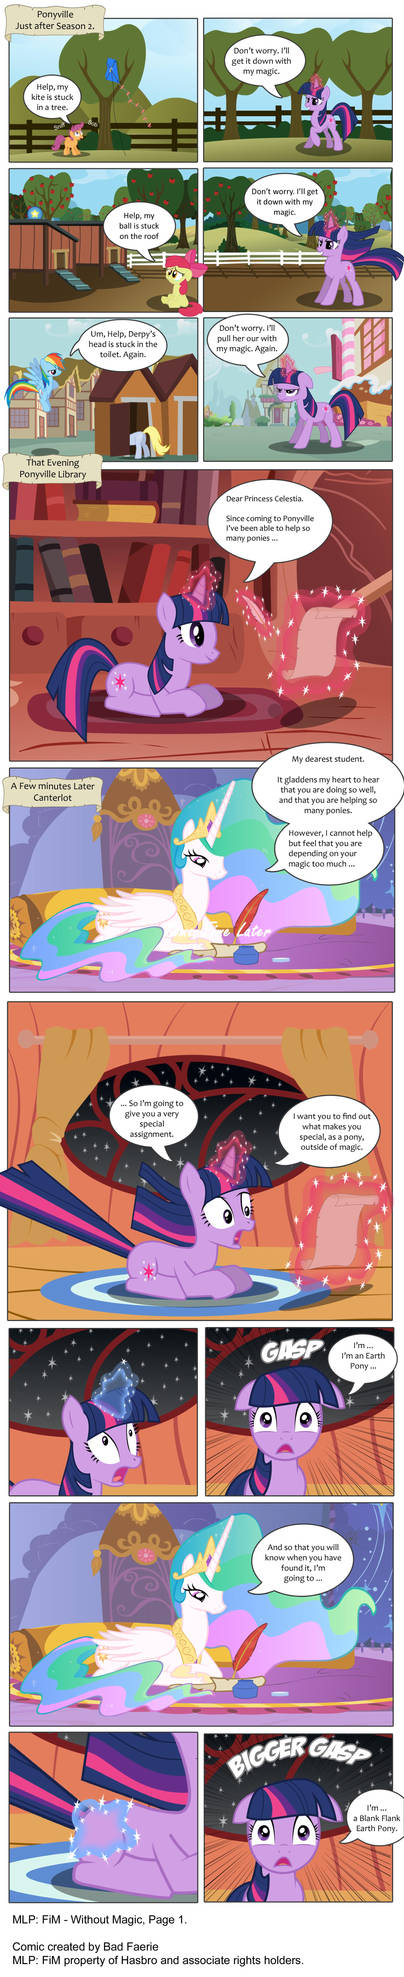 MLP: FIM - Without Magic - Part 1 (Edited)